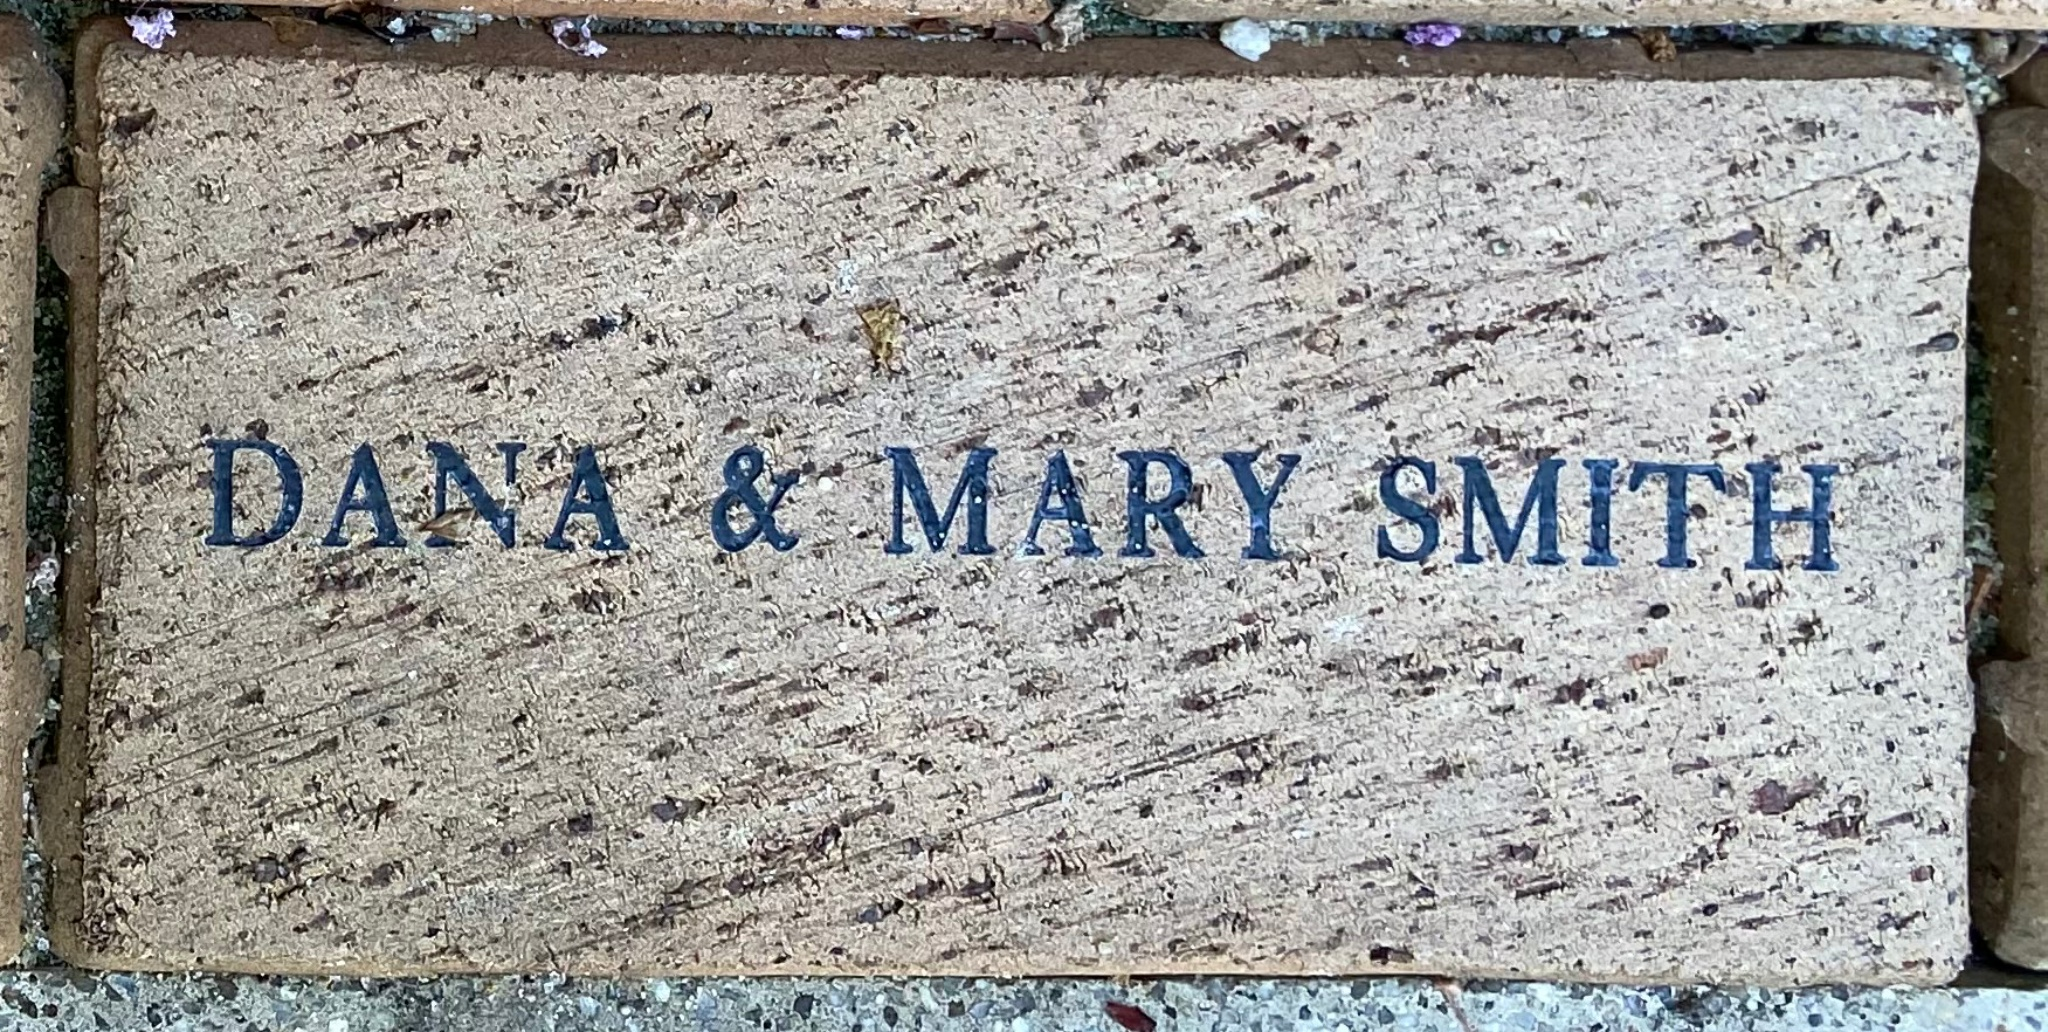 DANA & MARY SMITH